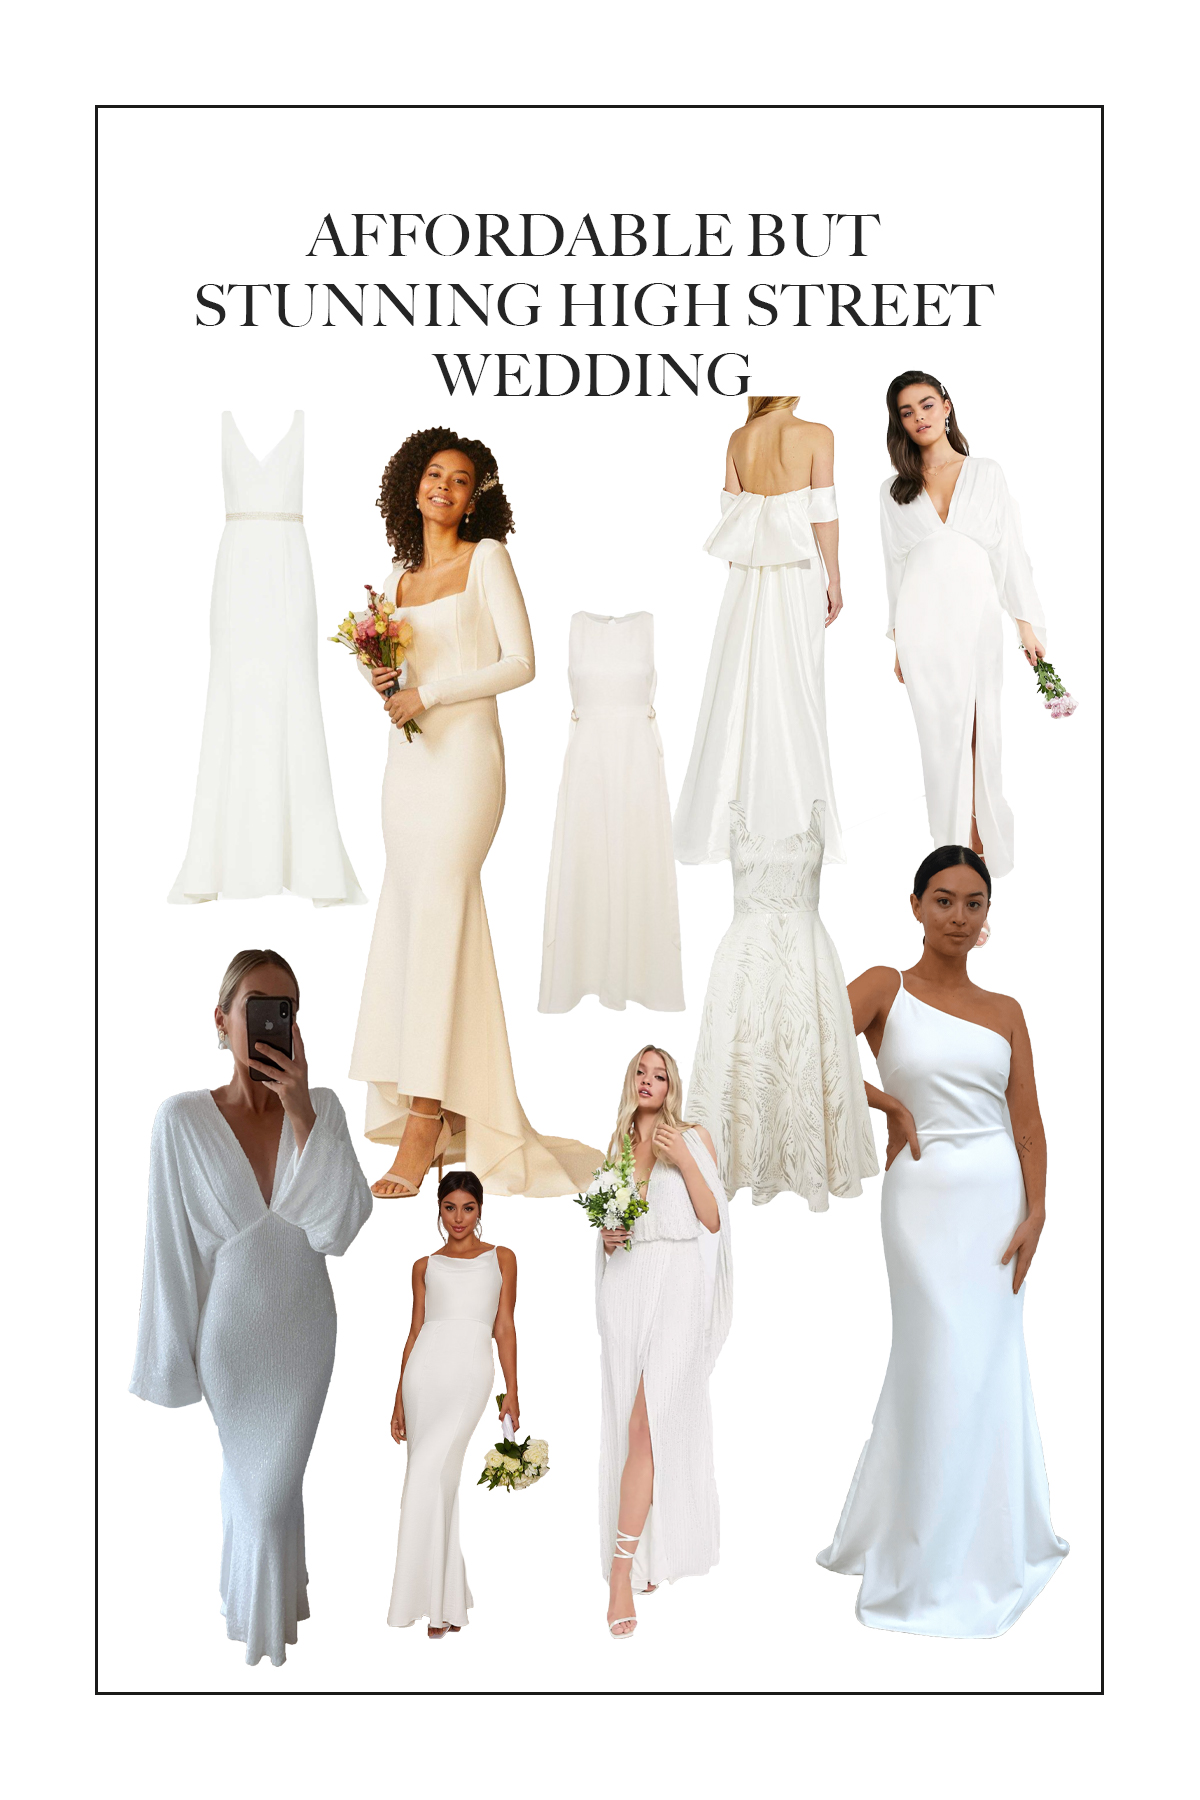 High Street wedding dresses that will look flawless on but won't cost an arm and a leg...